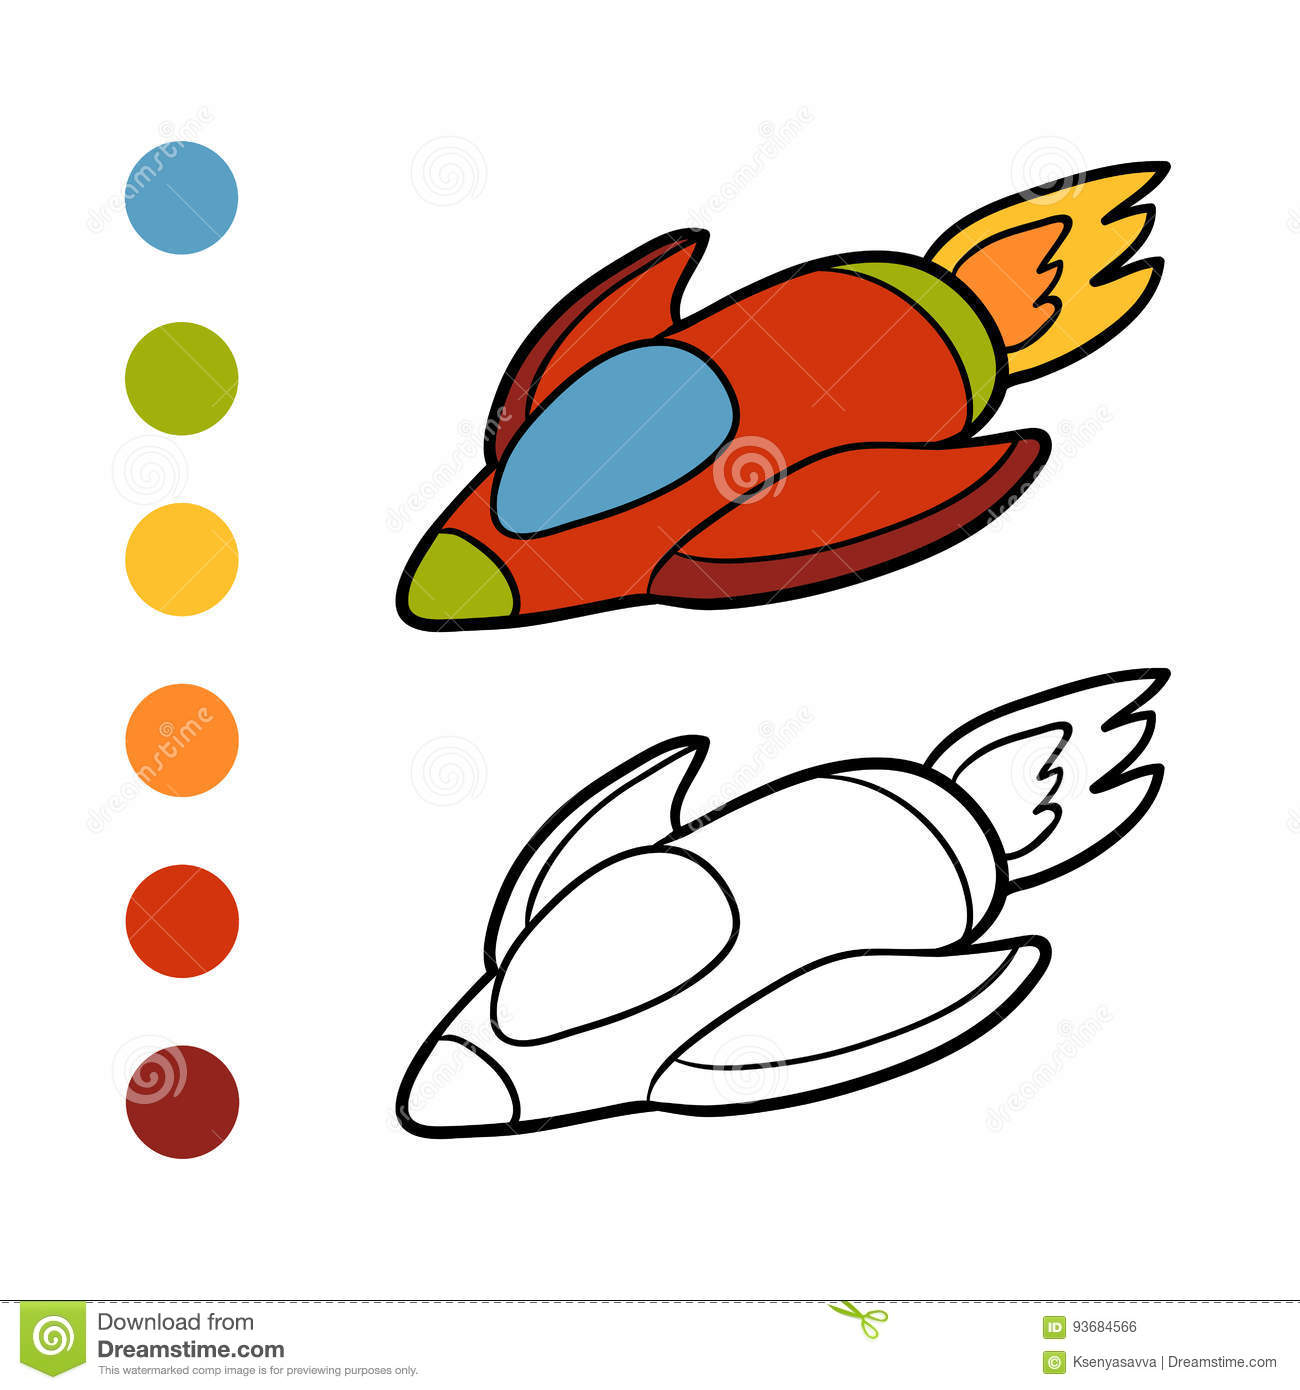 Coloring book, Spaceship stock vector. Illustration of outline ...